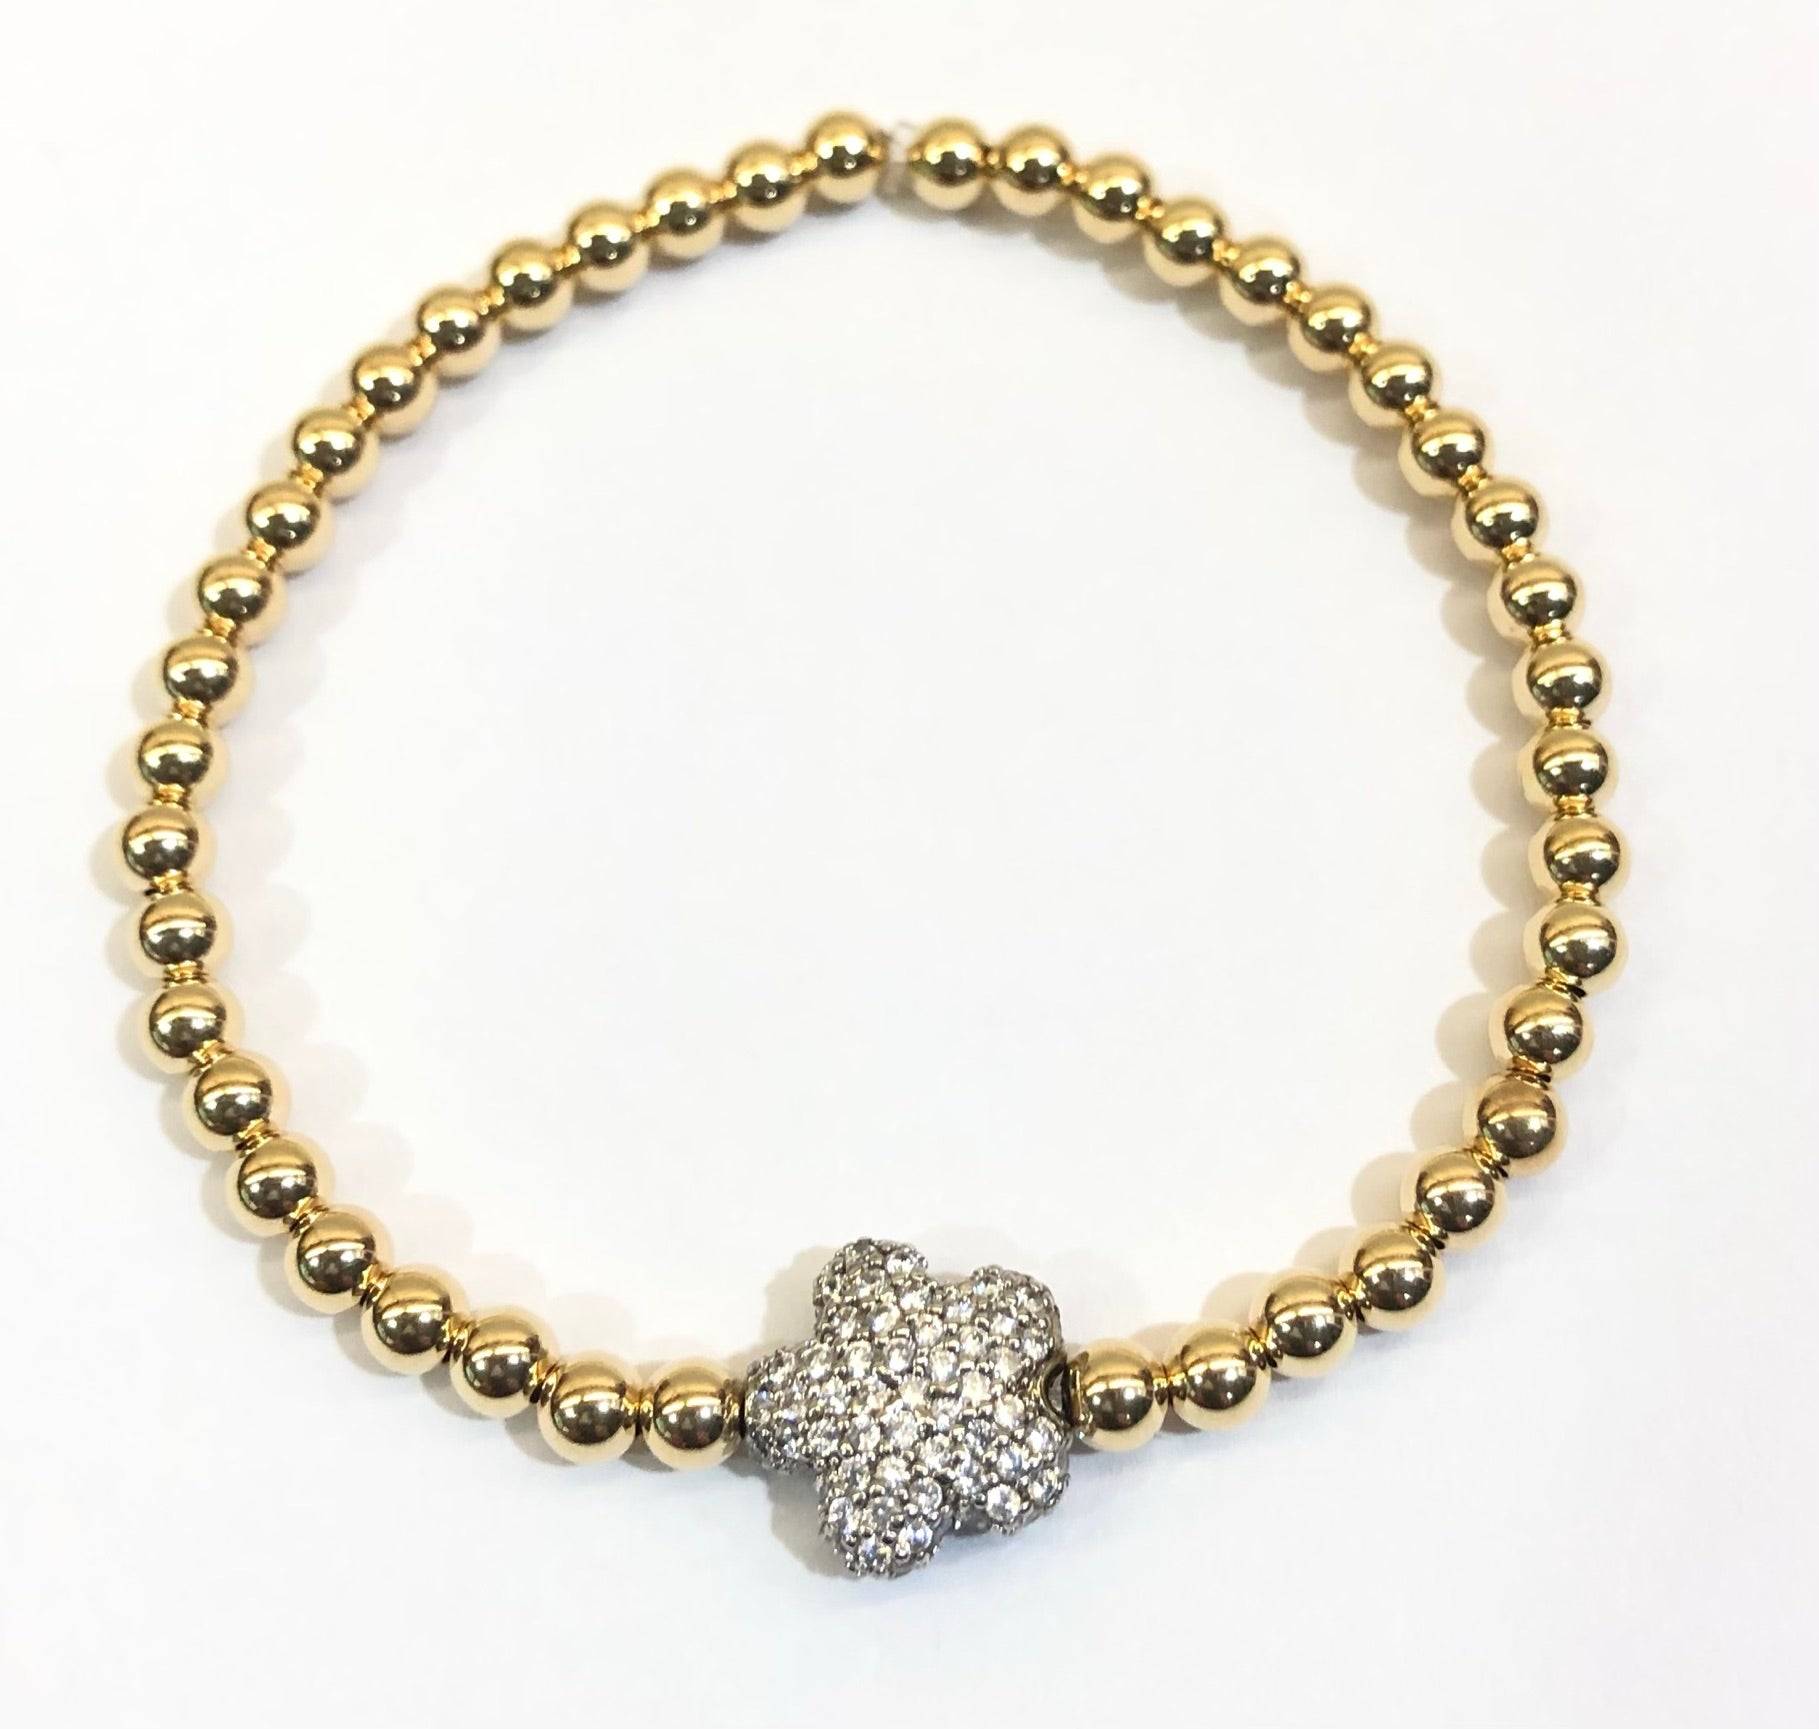 4mm 14k Gold Filled Bead Bracelet with CZ Jeweled Flower